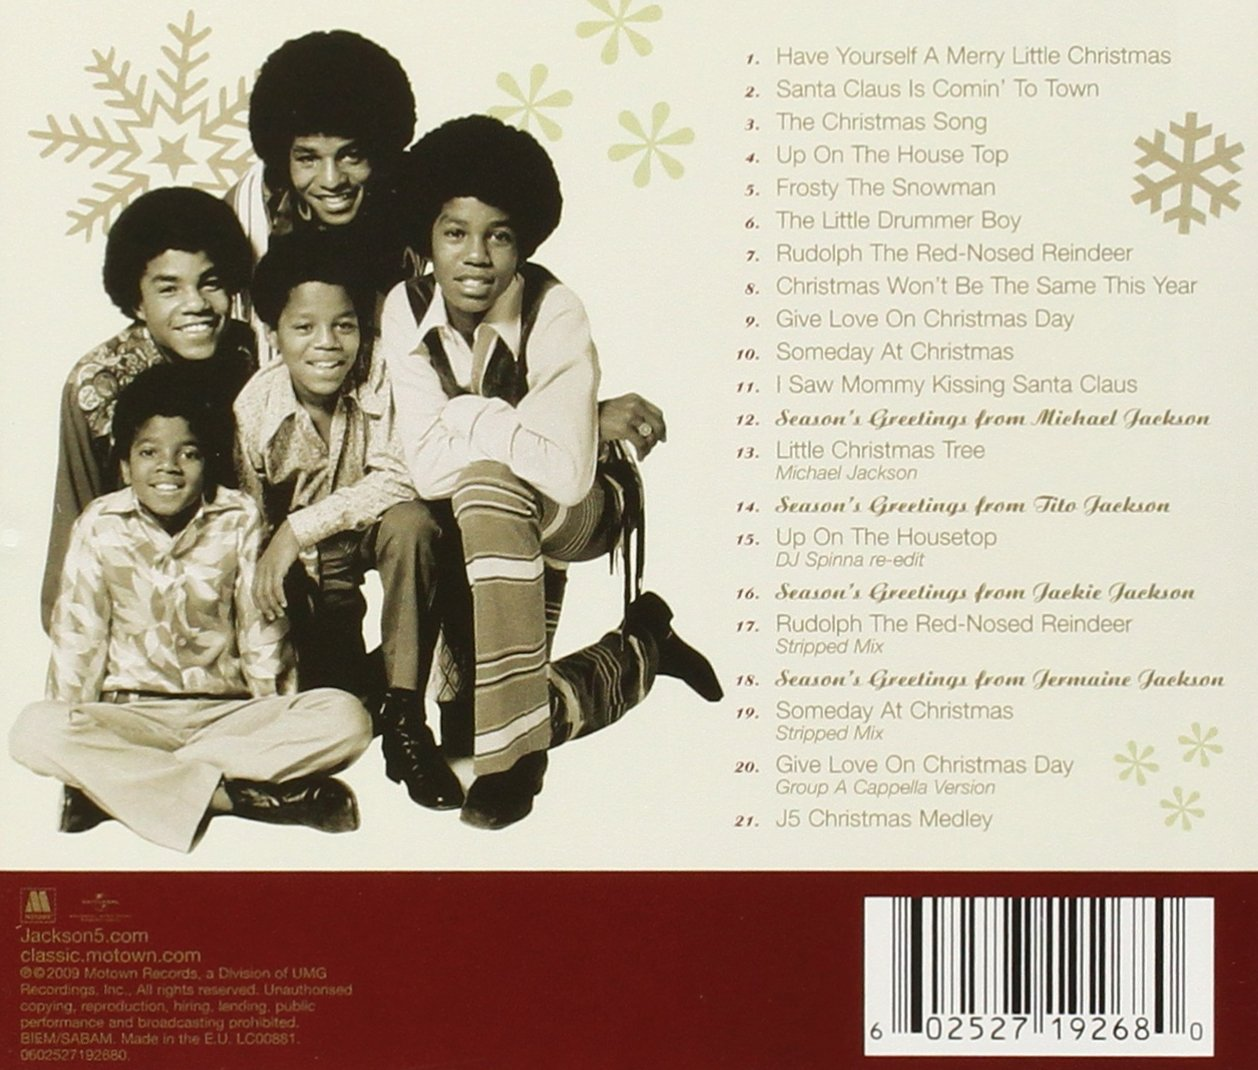 Jackson 5 - Ultimate Christmas Collection - Amazon.com Music